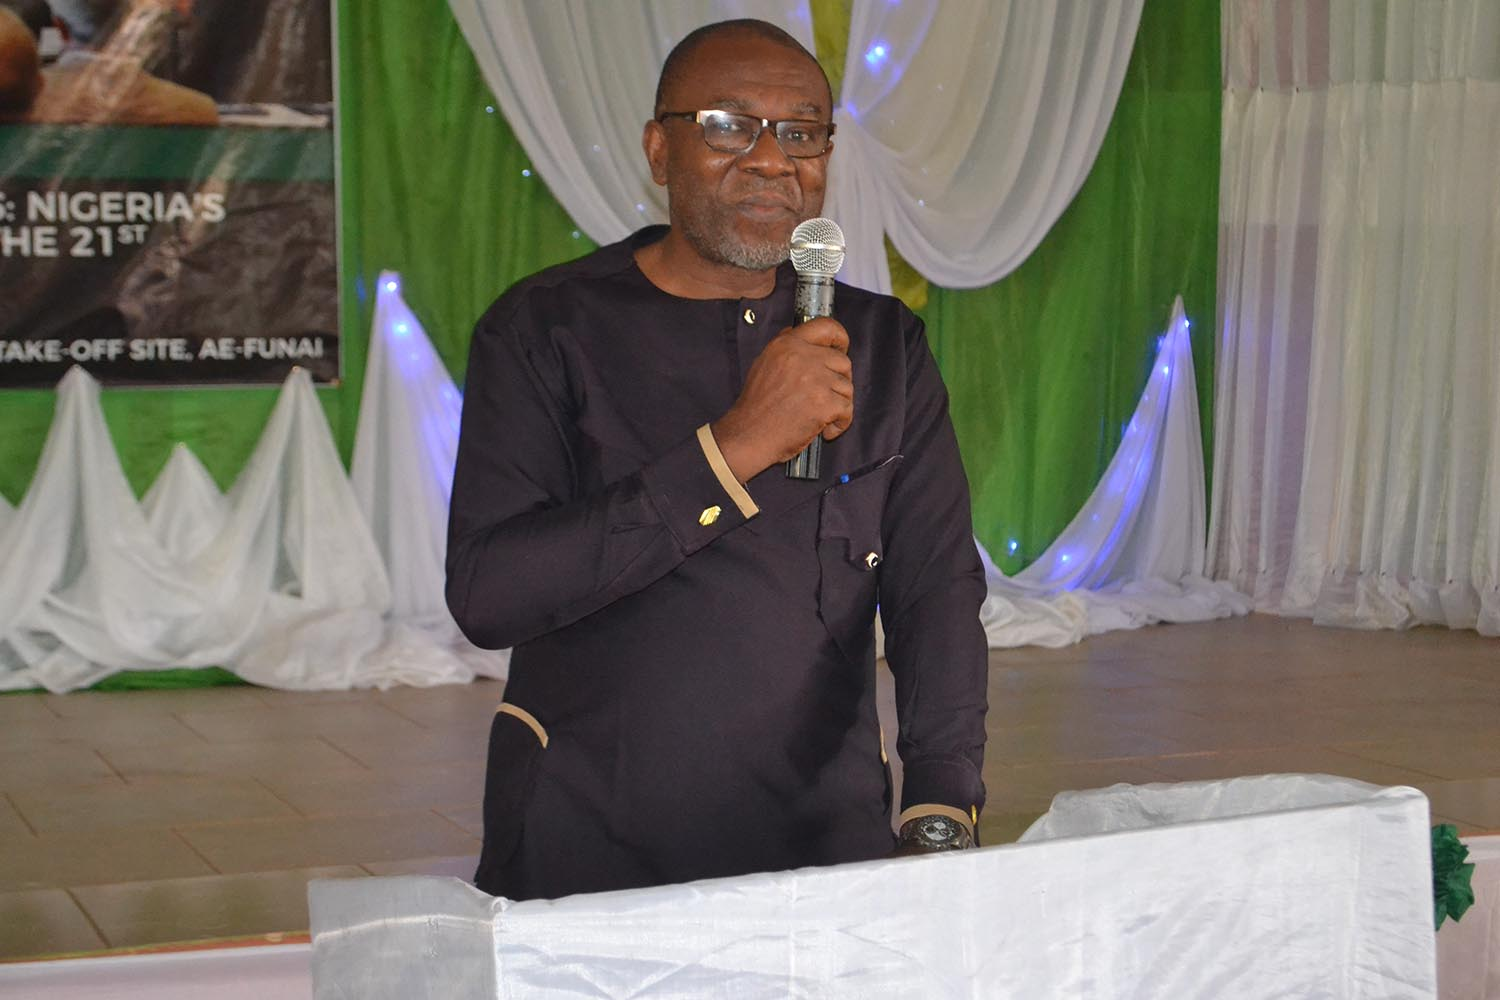 Prof Isidore Diala, delivering his keynote address